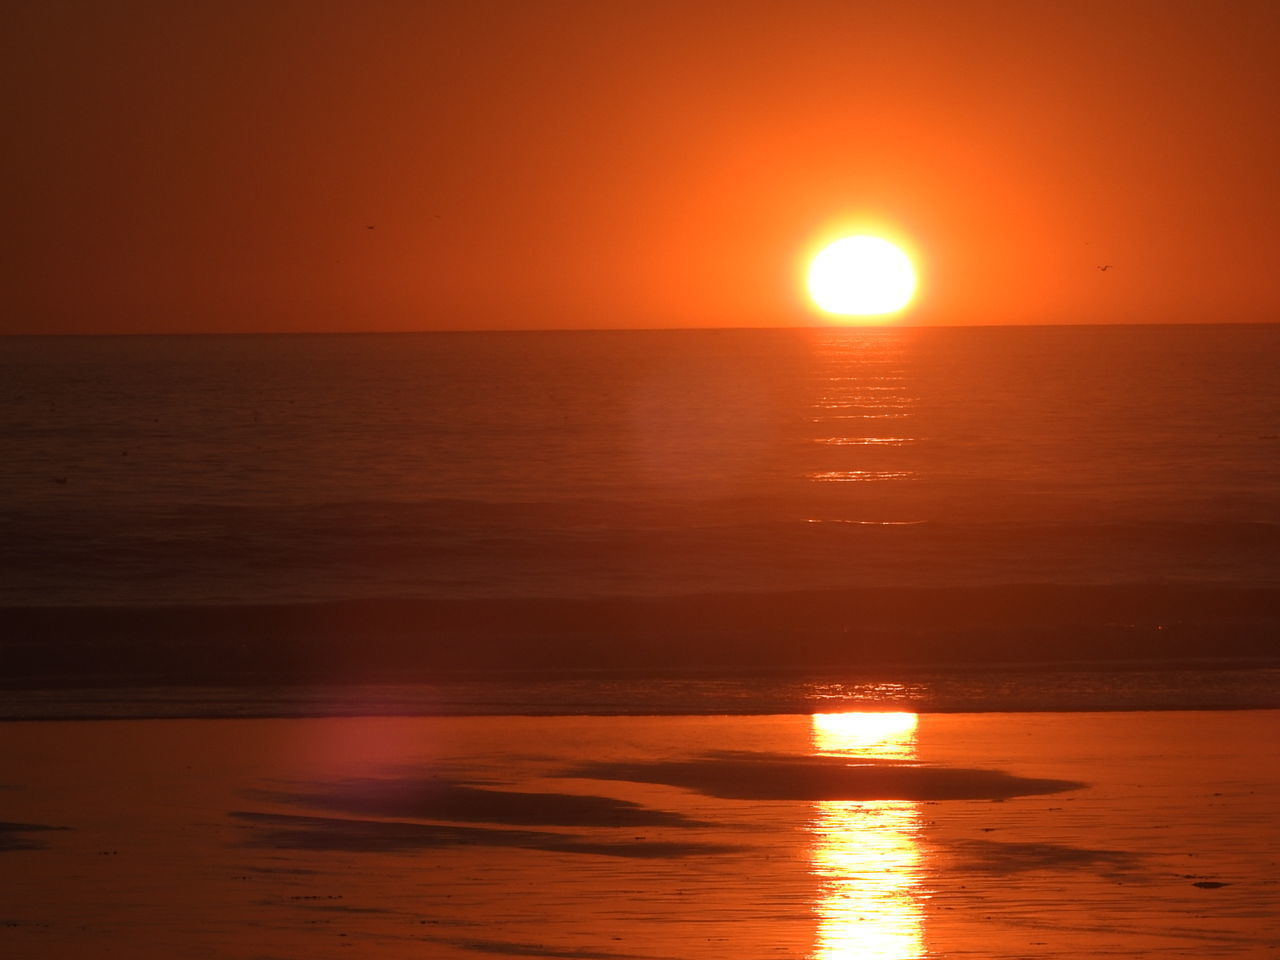 sunset, sun, sea, orange color, reflection, beauty in nature, nature, water, scenics, idyllic, tranquility, beach, tranquil scene, sky, waterfront, sunlight, horizon over water, summer, silhouette, horizon, no people, outdoors, landscape